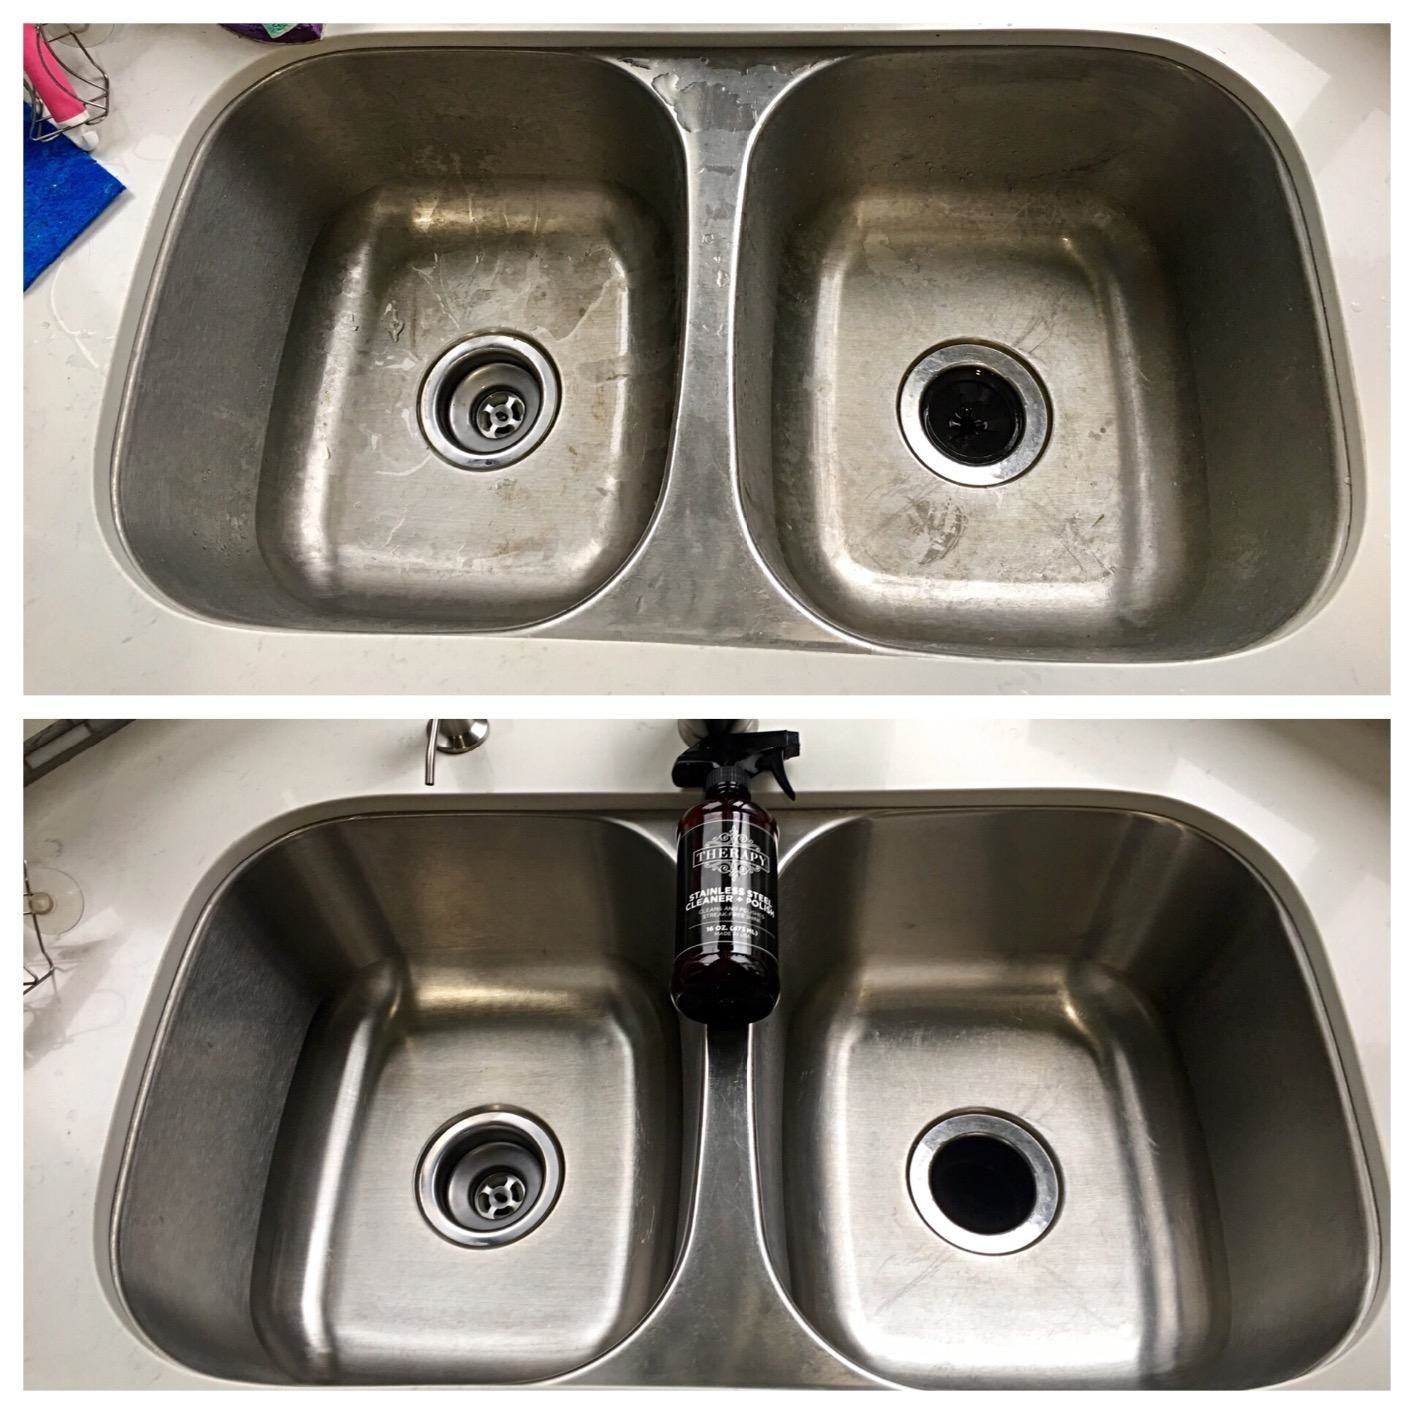 reviewer before-and-after photo showing their stainless steel sink looking brand new after using stainless steel cleaner